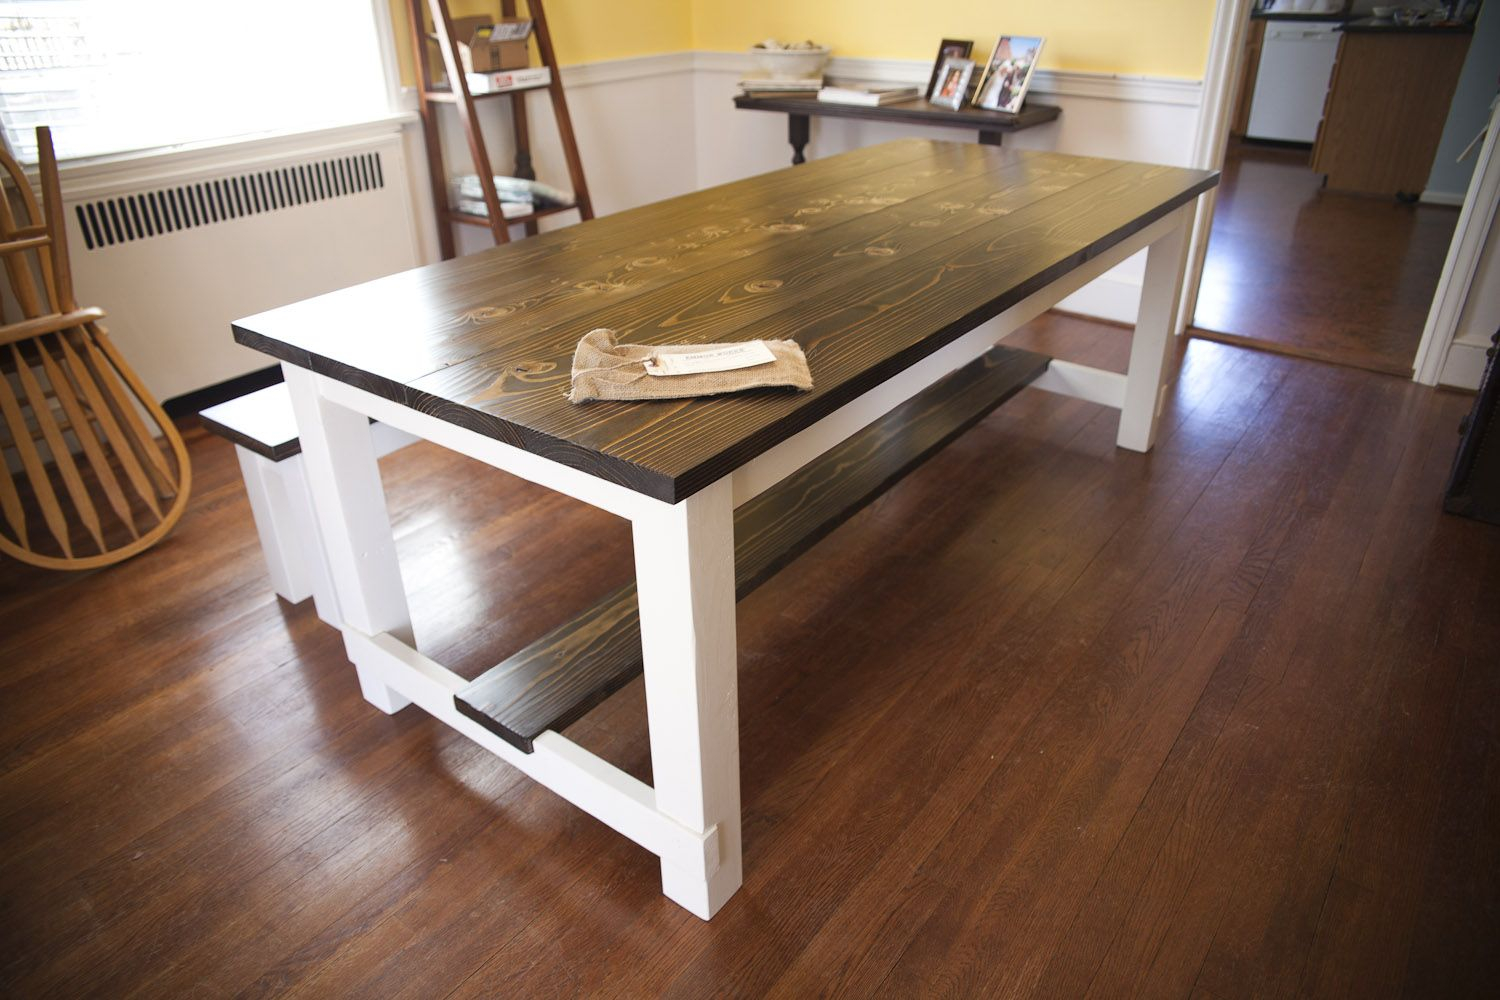 7ft Farmhouse Table Style. Kitchen Table / Dining Table By EmmorWorks.  Hand Crafted